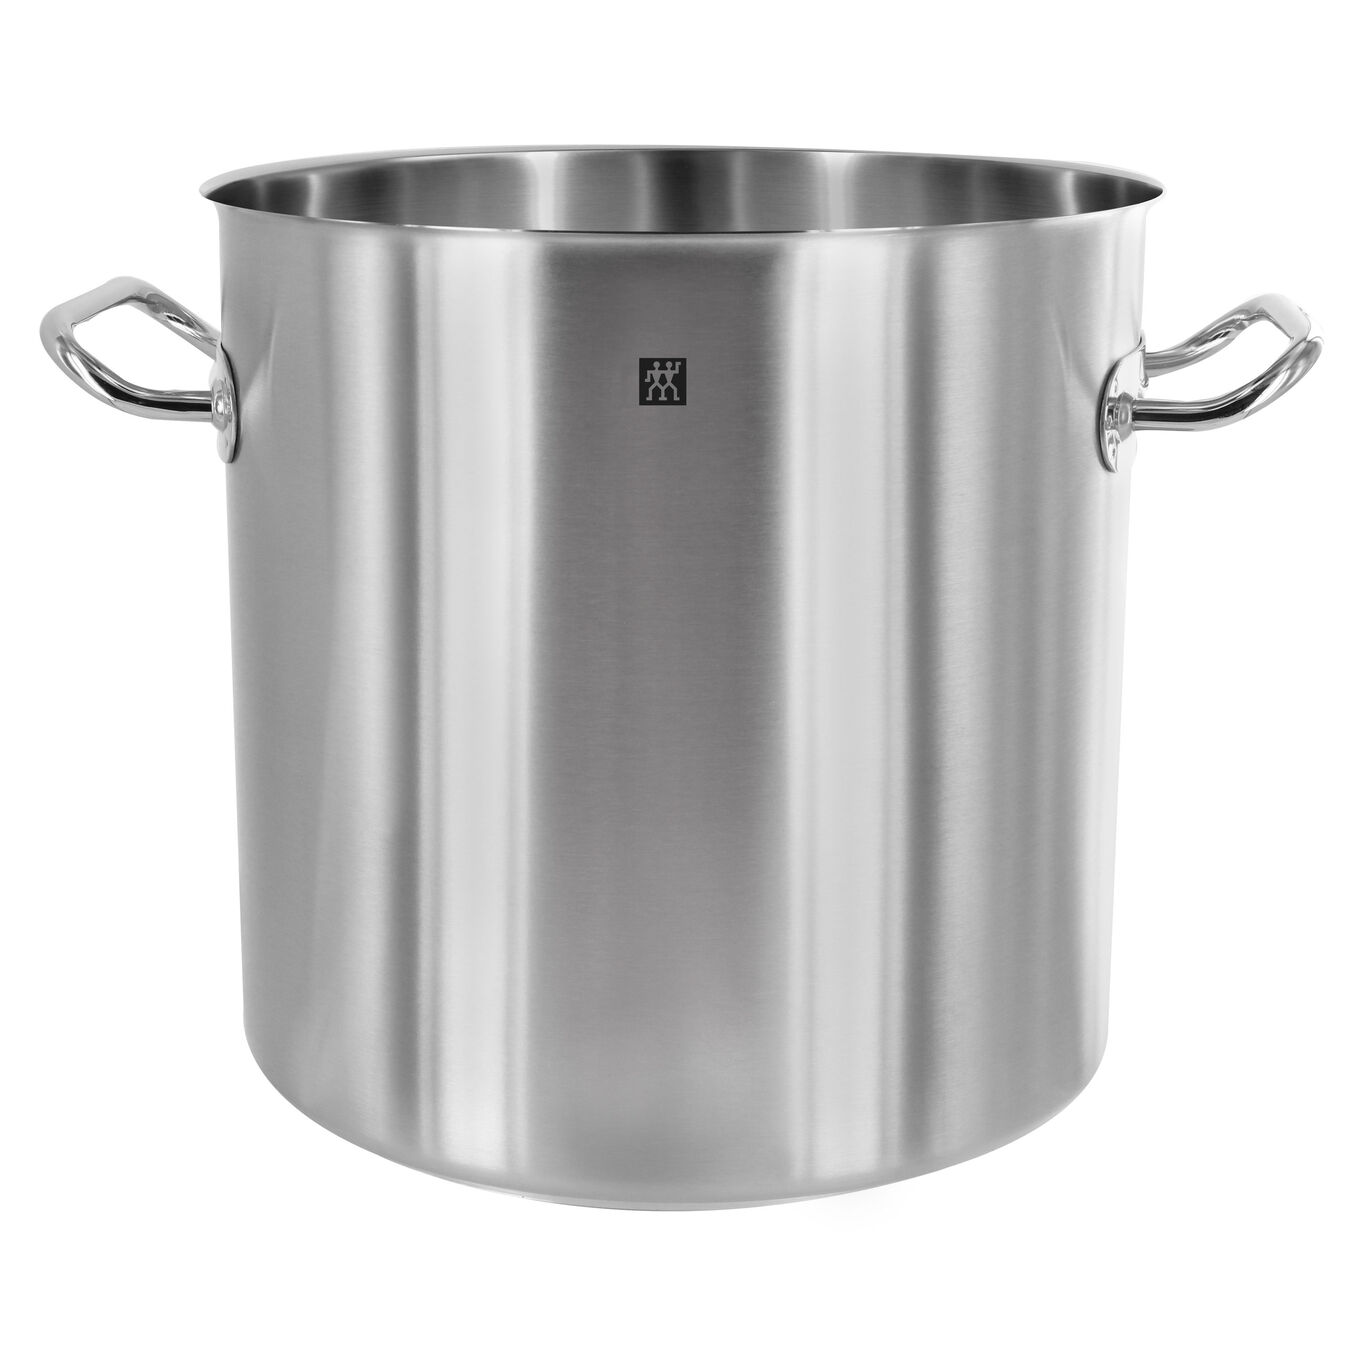 17 l 18/10 Stainless Steel Stock pot,,large 1